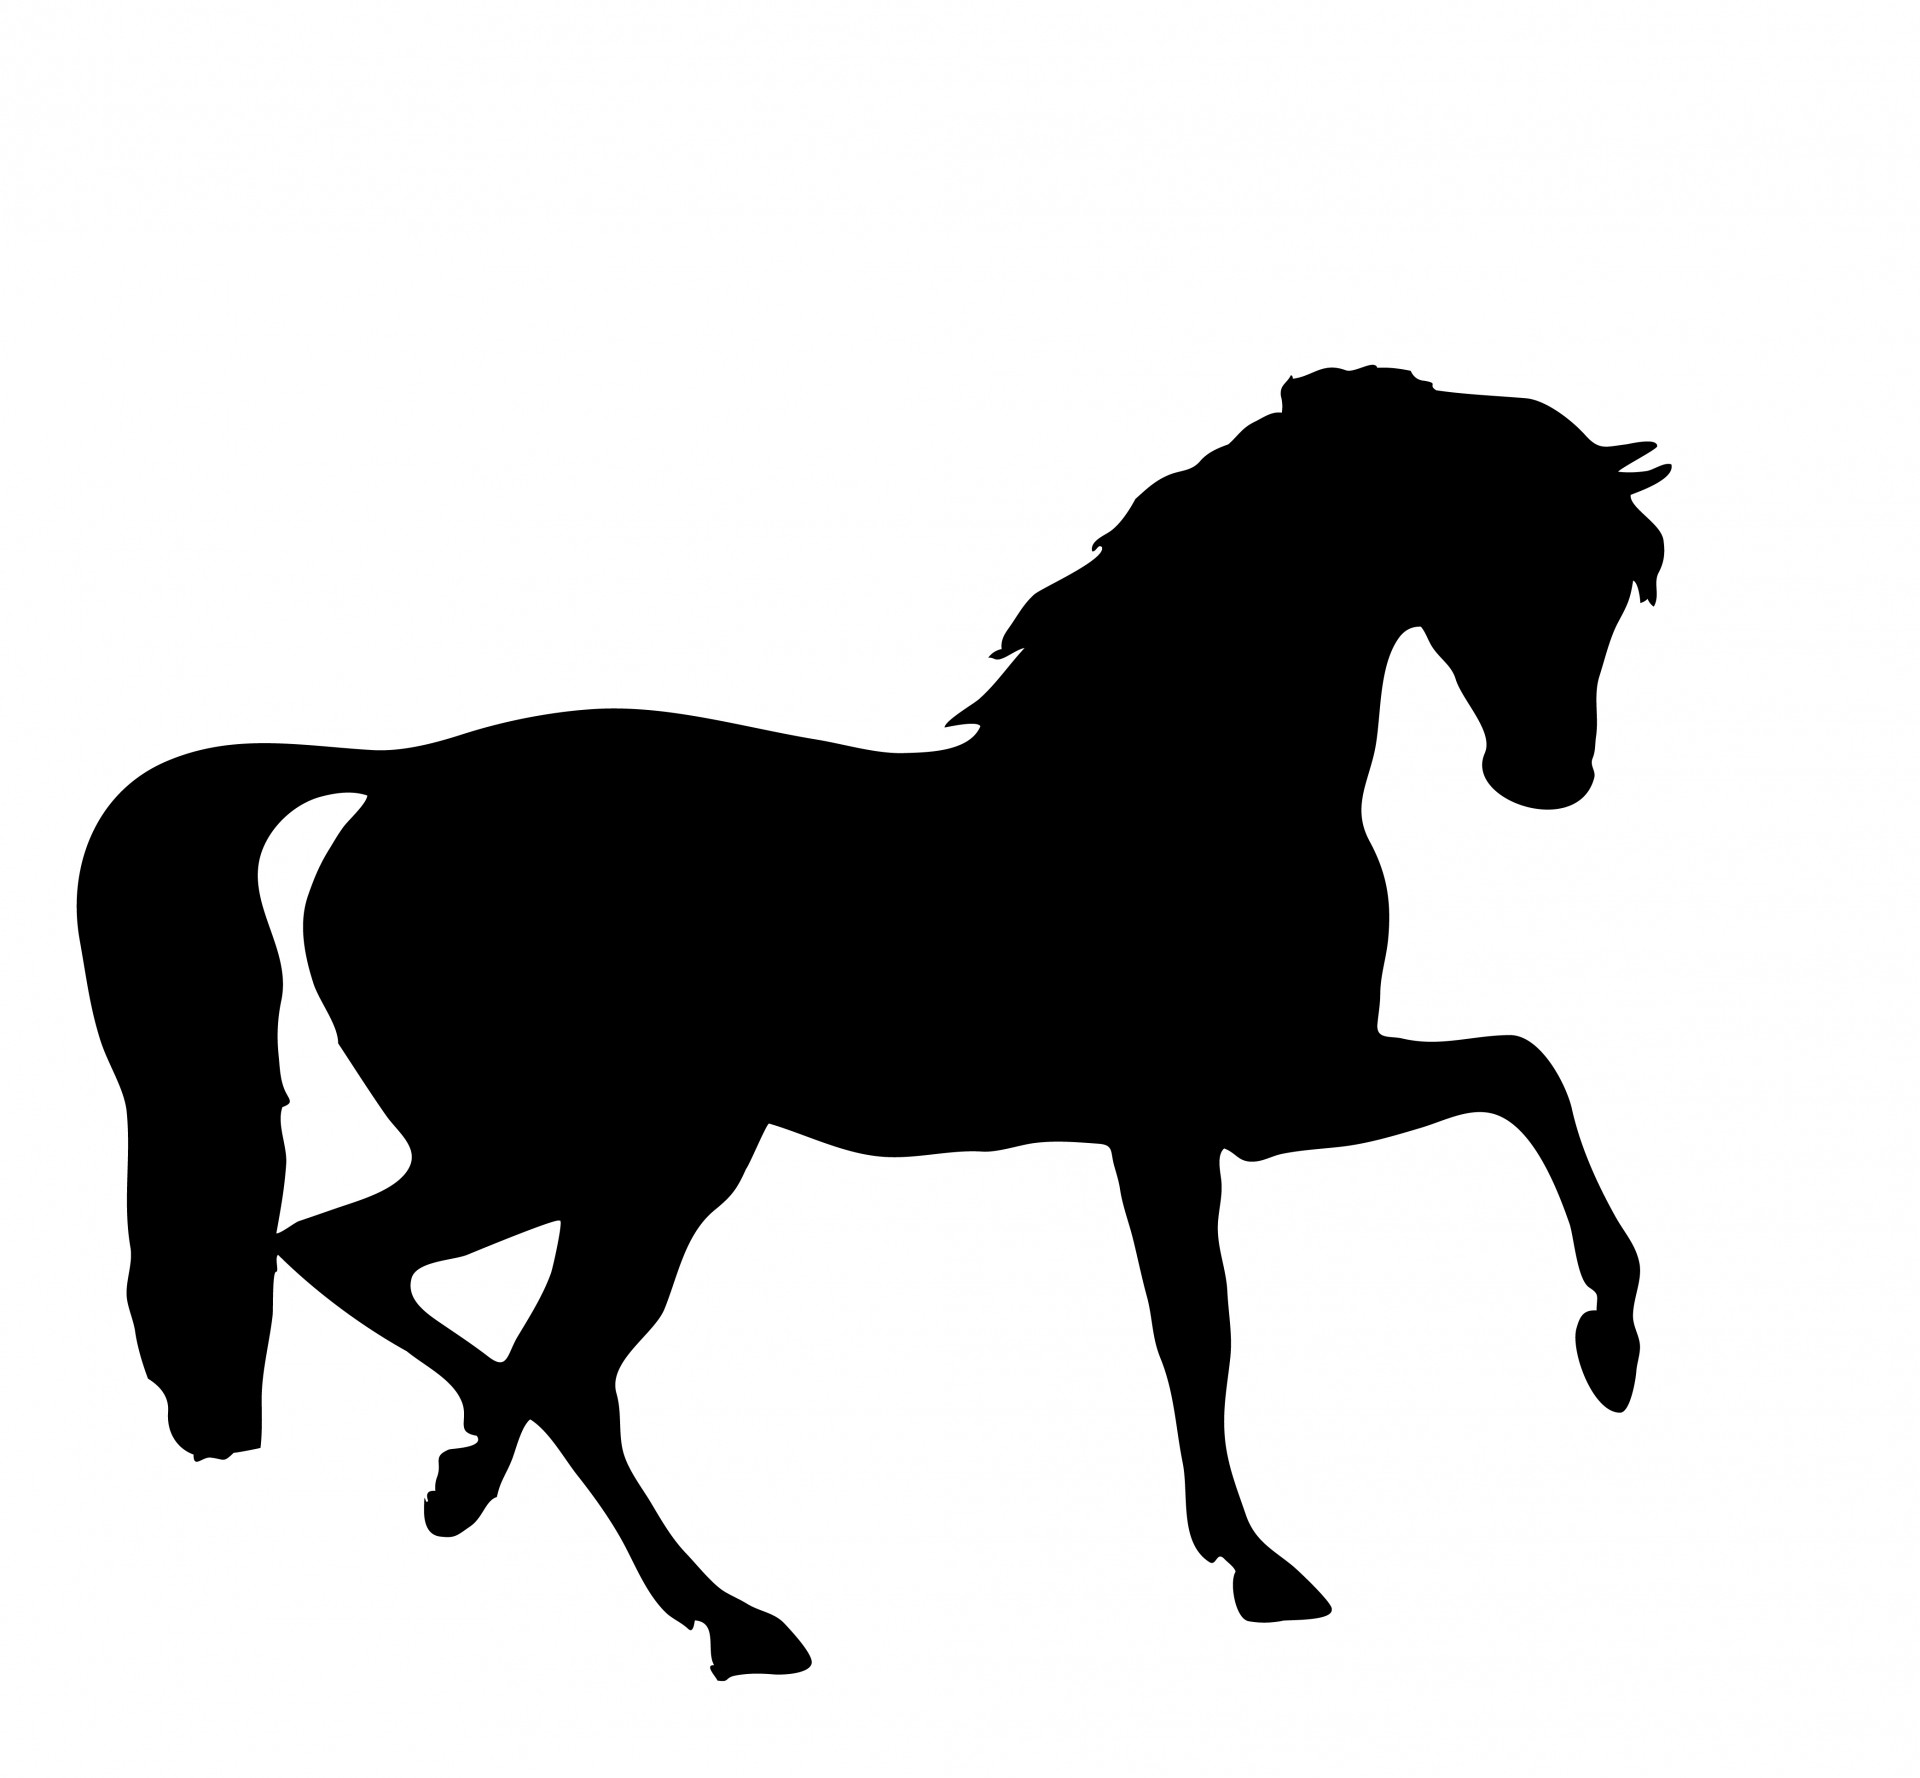 1920x1778 Horse Silhouette Clipart Free Stock Photo